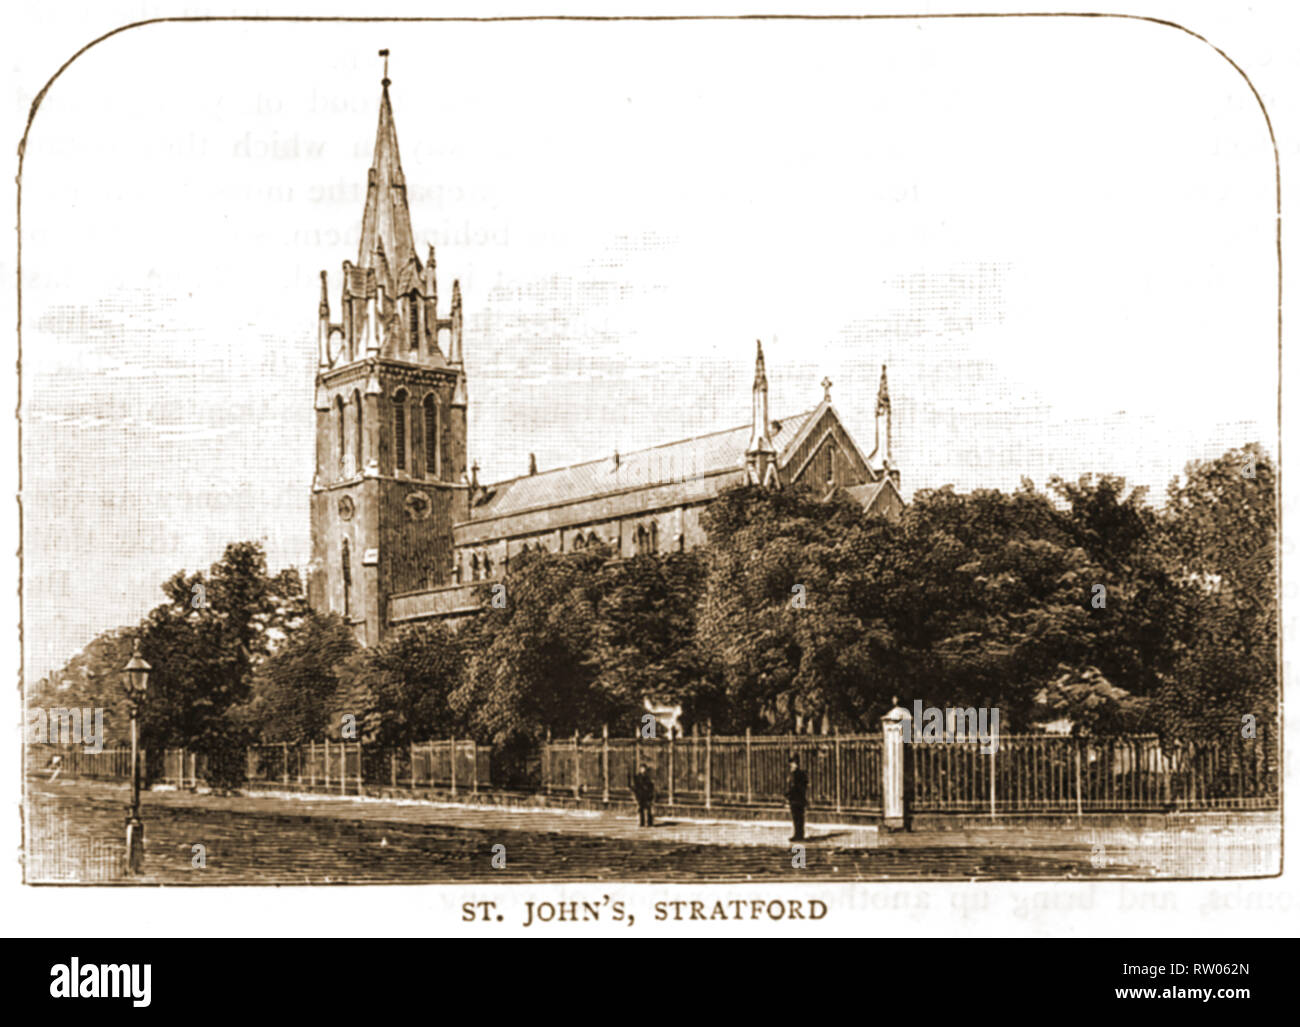 An old illustration showing the Church of St John's Stratford, England. It's one time vicar was Thomas Stevens (1841-1920) First Anglican Bishop of Barking, England . A Freemason, he became joint Grand Chaplain of the United Grand Lodge of England - Stock Image